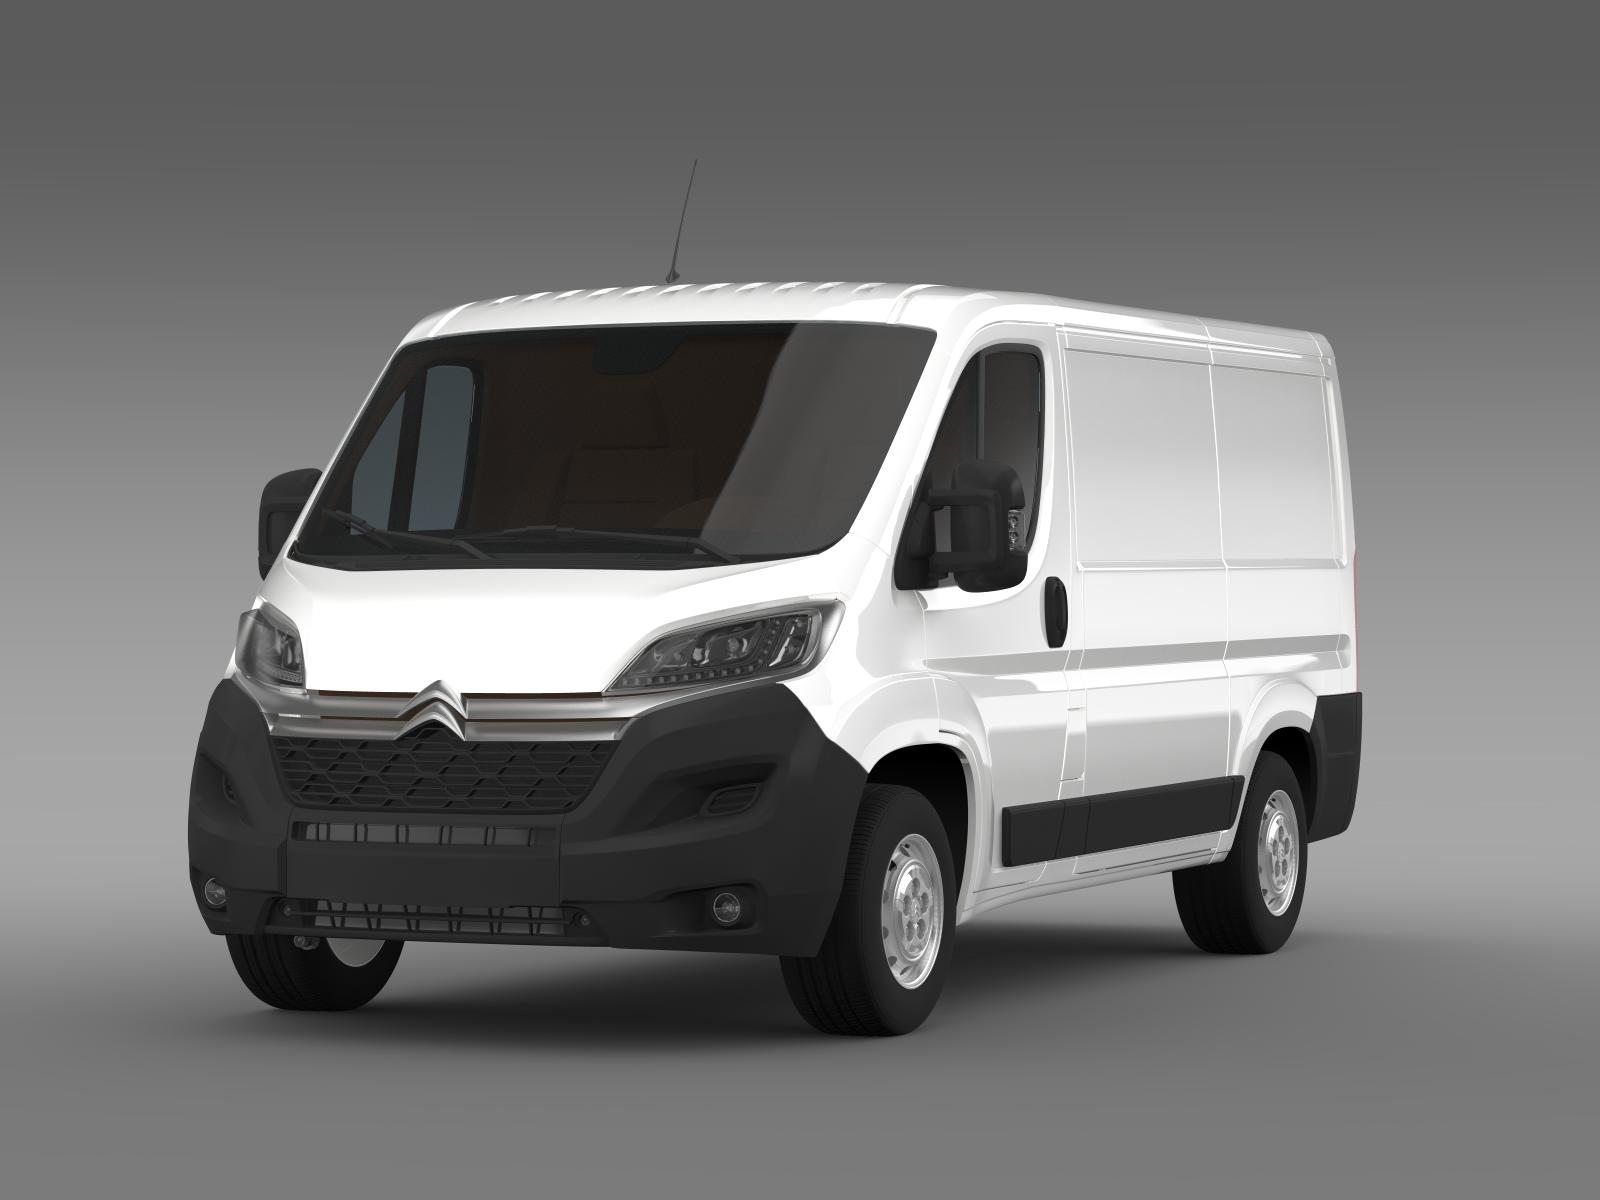 citroen jumper van l1h1 2015 3d model. Black Bedroom Furniture Sets. Home Design Ideas